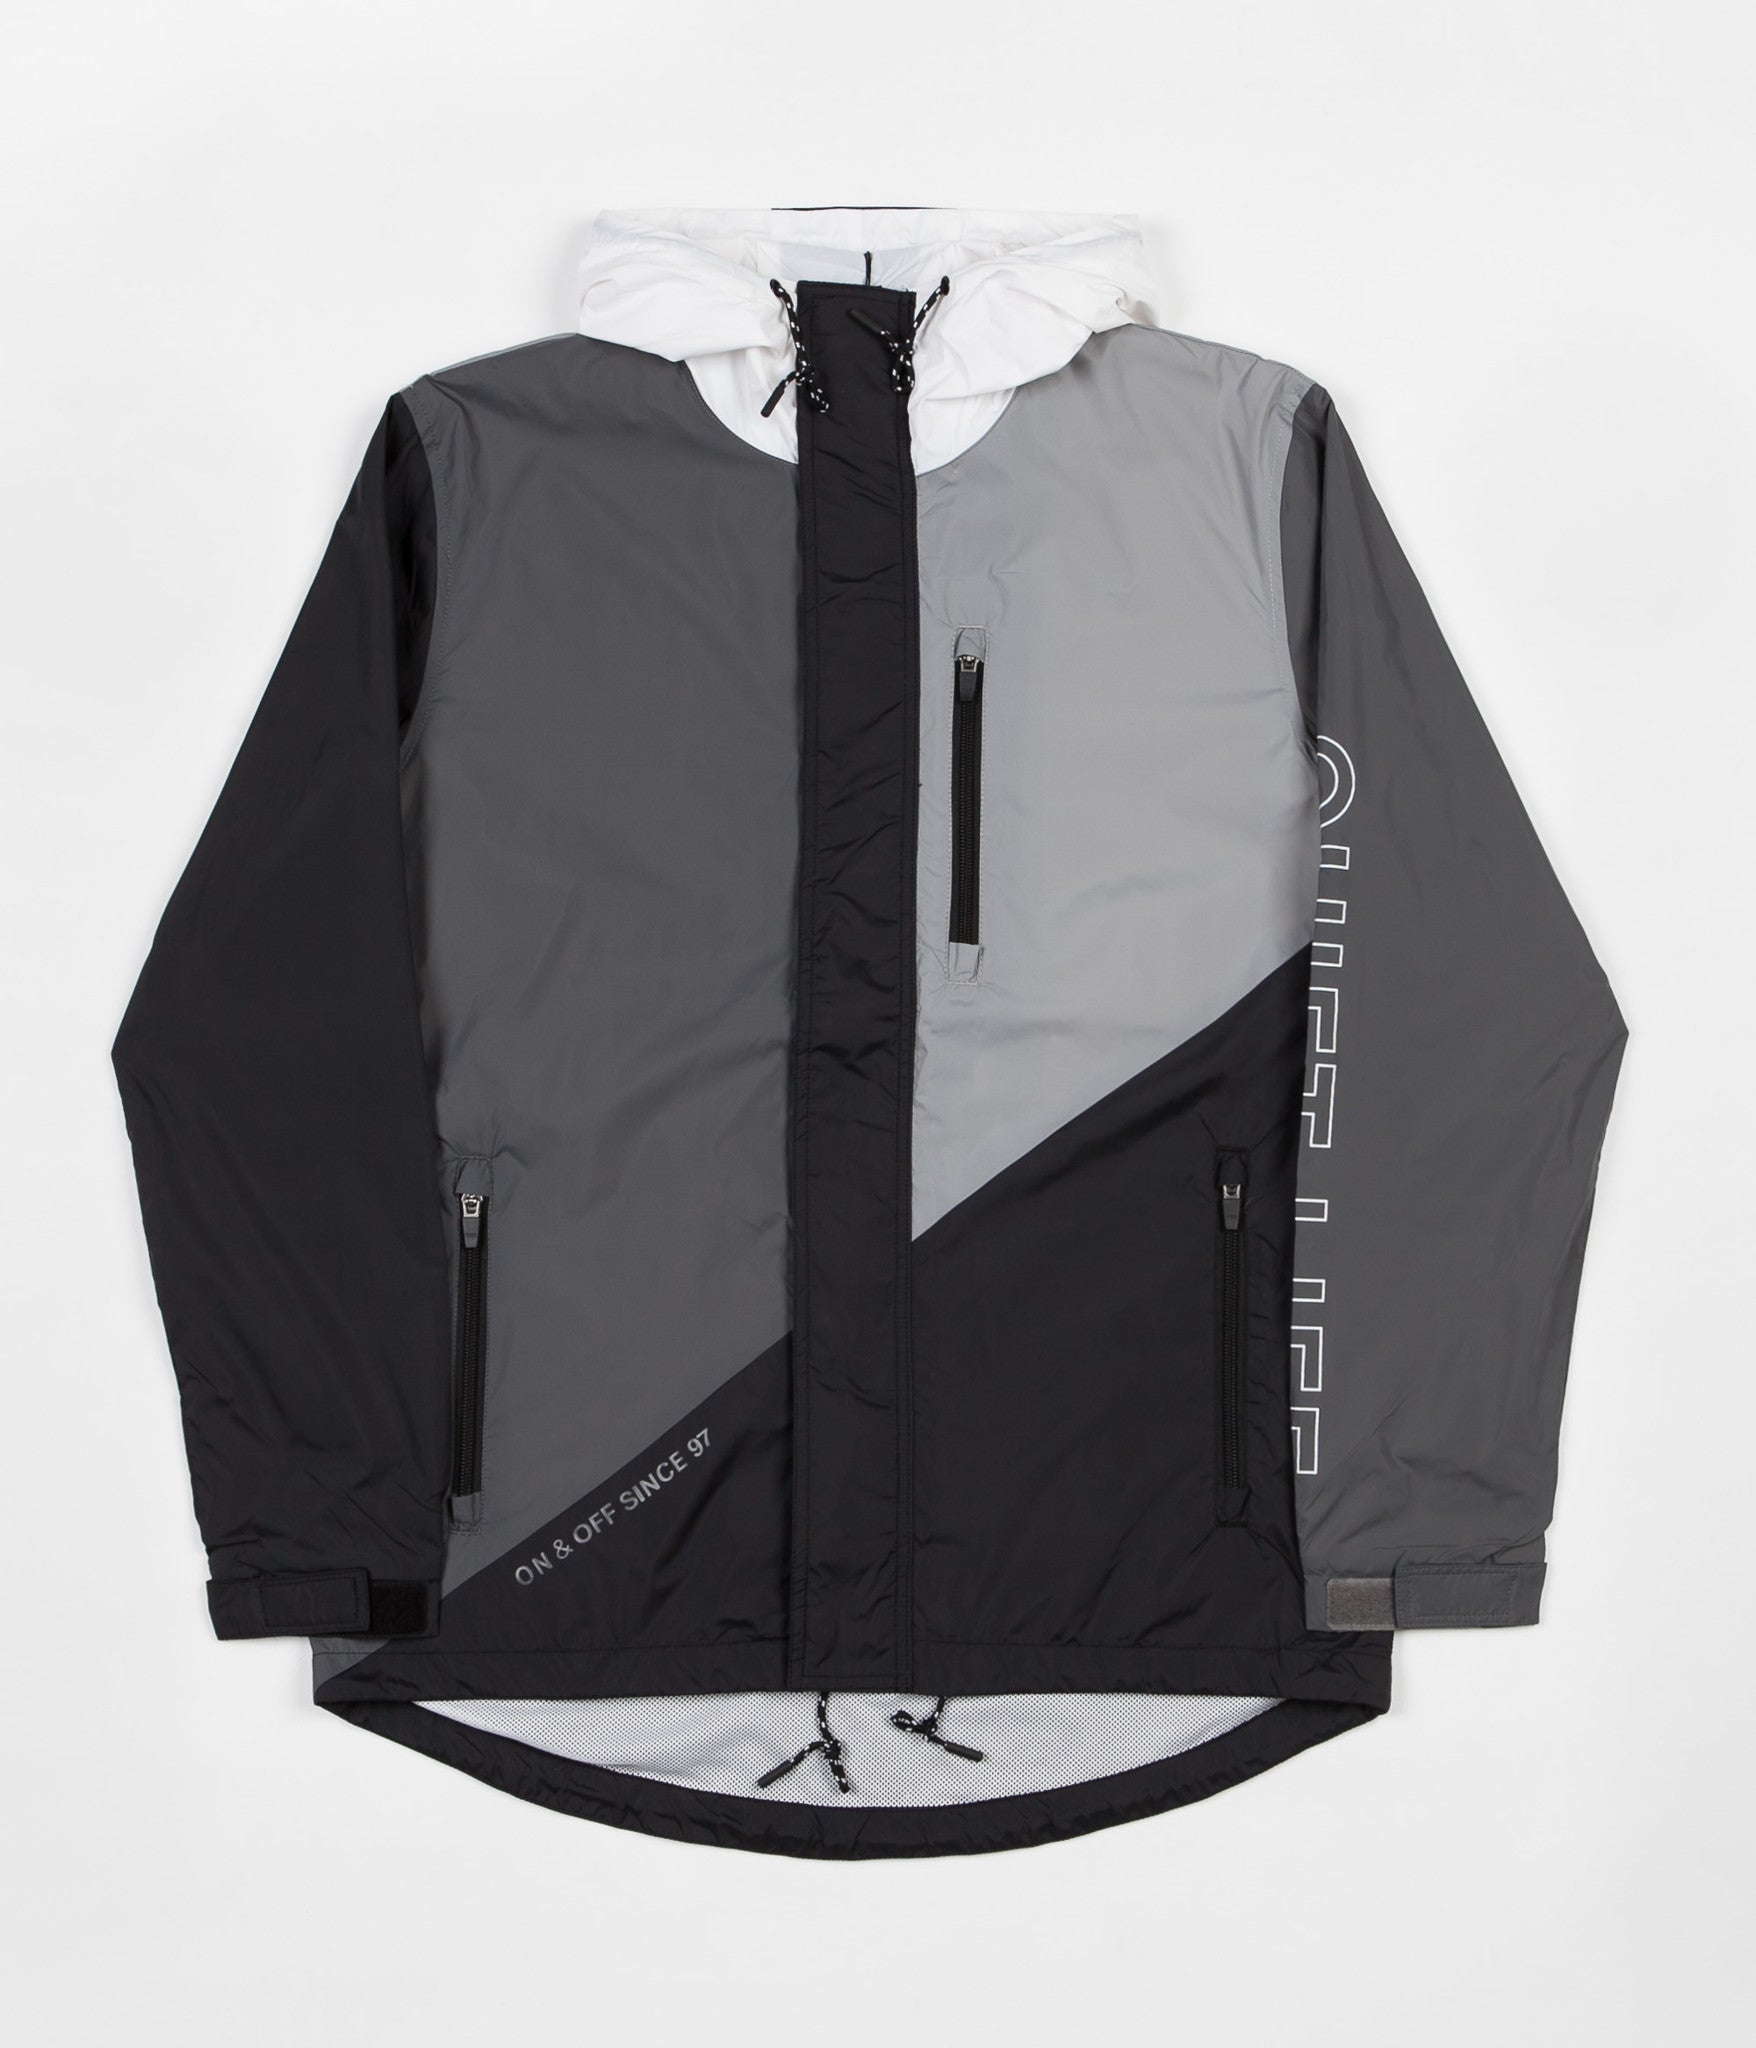 The Quiet Life Boundary Windbreaker Jacket - Black / Grey